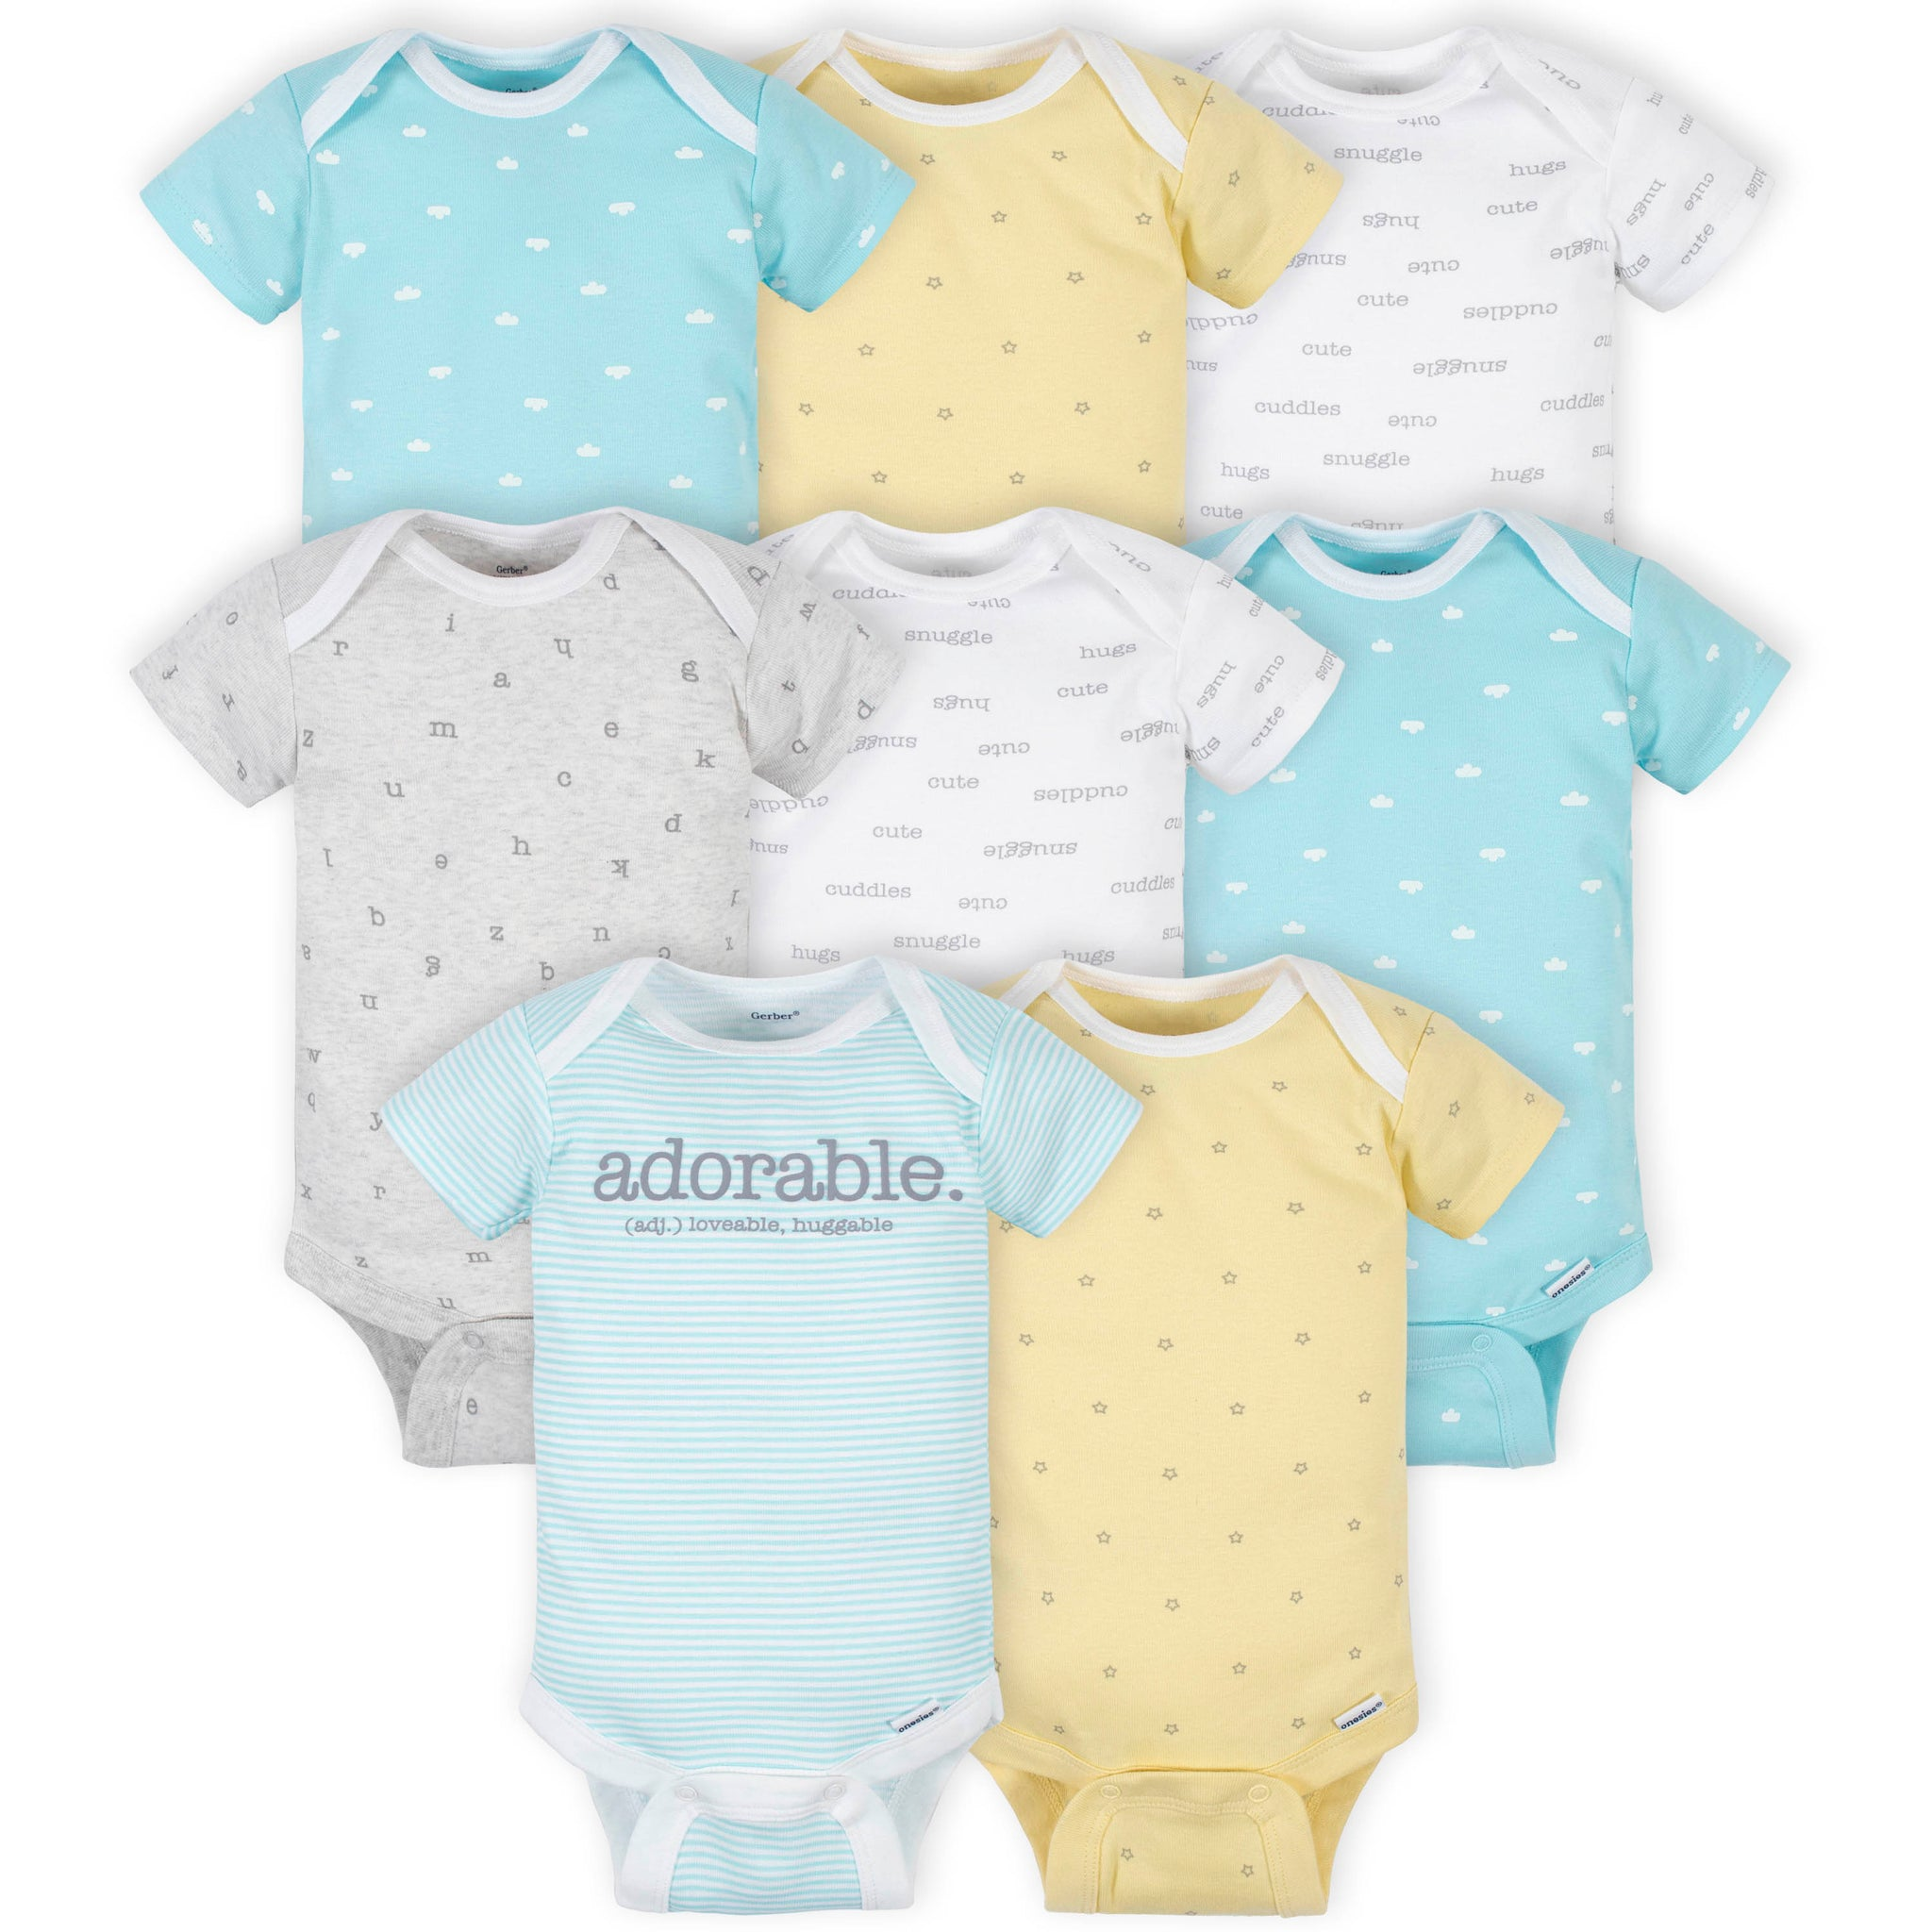 8-Pack Baby Neutral Words Short Sleeve Onesies® Bodysuits-Gerber Childrenswear Wholesale